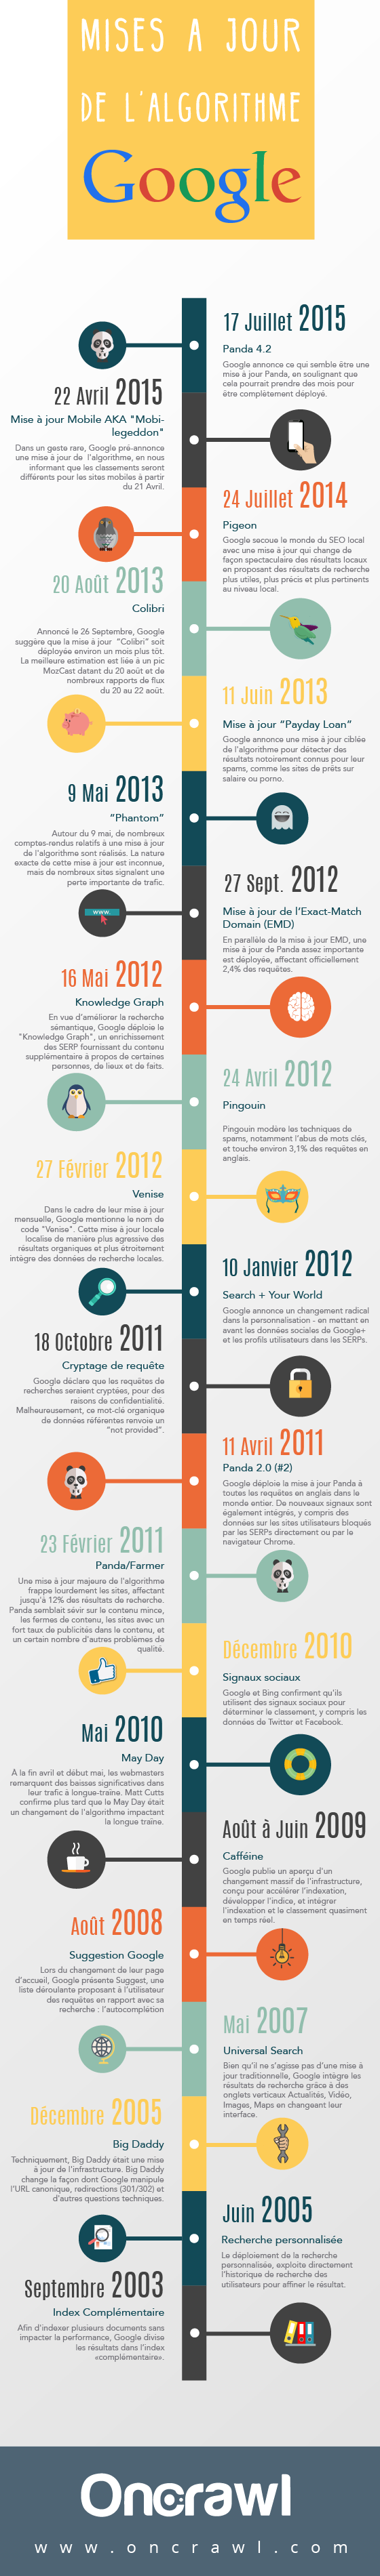 infographie-google-updates-oncrawl